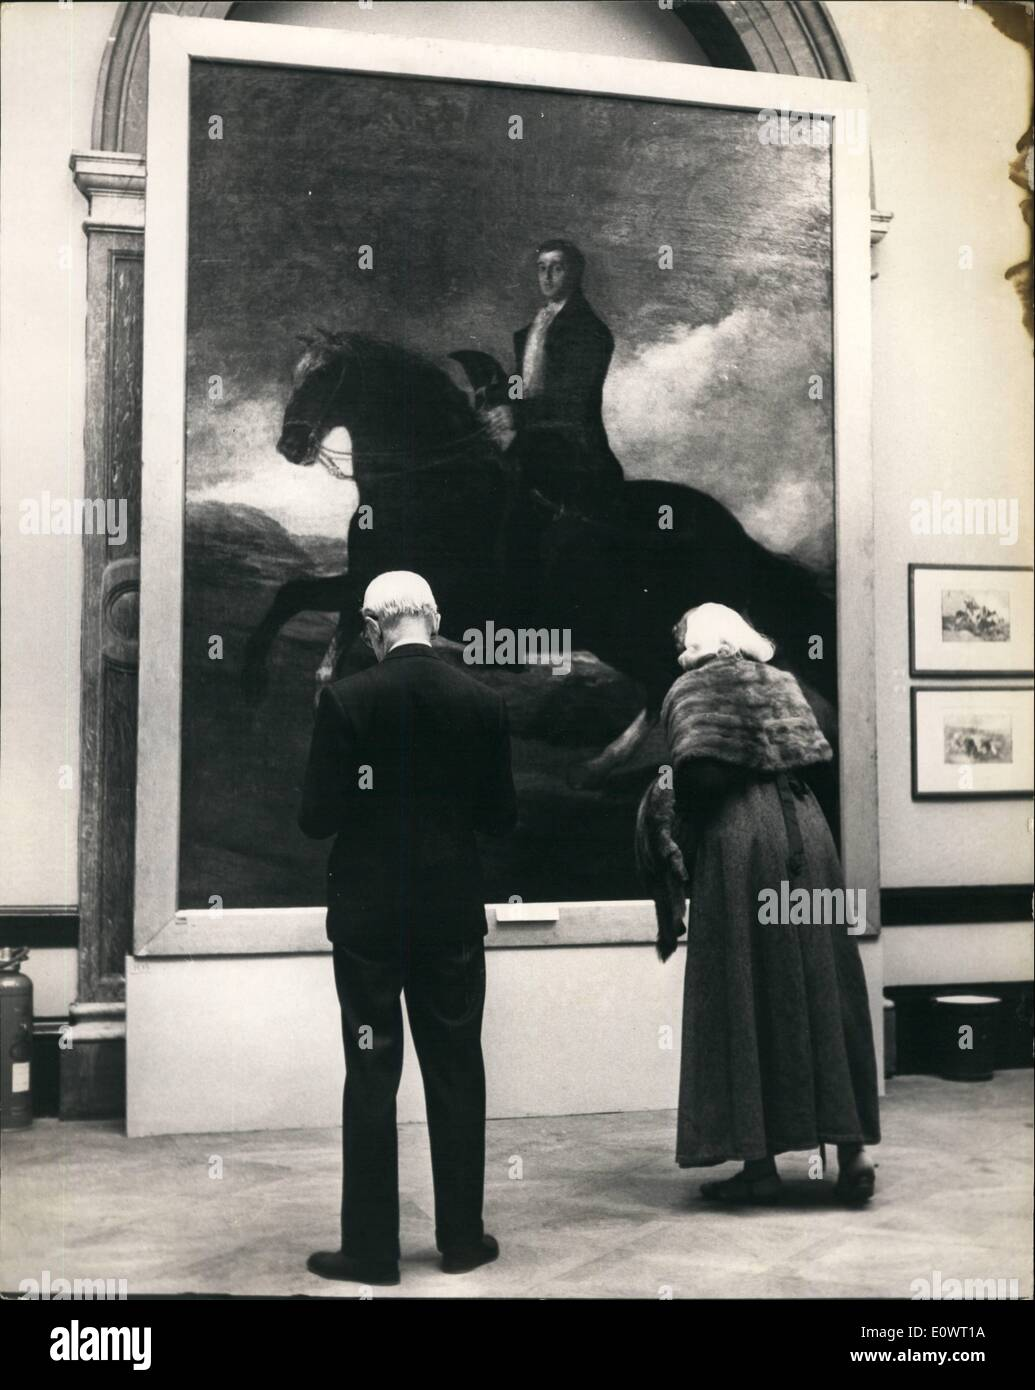 Dec. 12, 1963 - Private view of Goya Exhibition. ''Duke of Mellington Painting.: A Private view was held this morning at the Royal Academy of the exhibition of paintings by Goya and his contemporaries. The exhibits are valued at £7,500,000 - and the exhibition which cost the Academy £40,000 to stage, will last for three months. Photo shows ''Duke of Wellington'' - astride a horse - one of the paintings at the exhibition today. - Stock Image